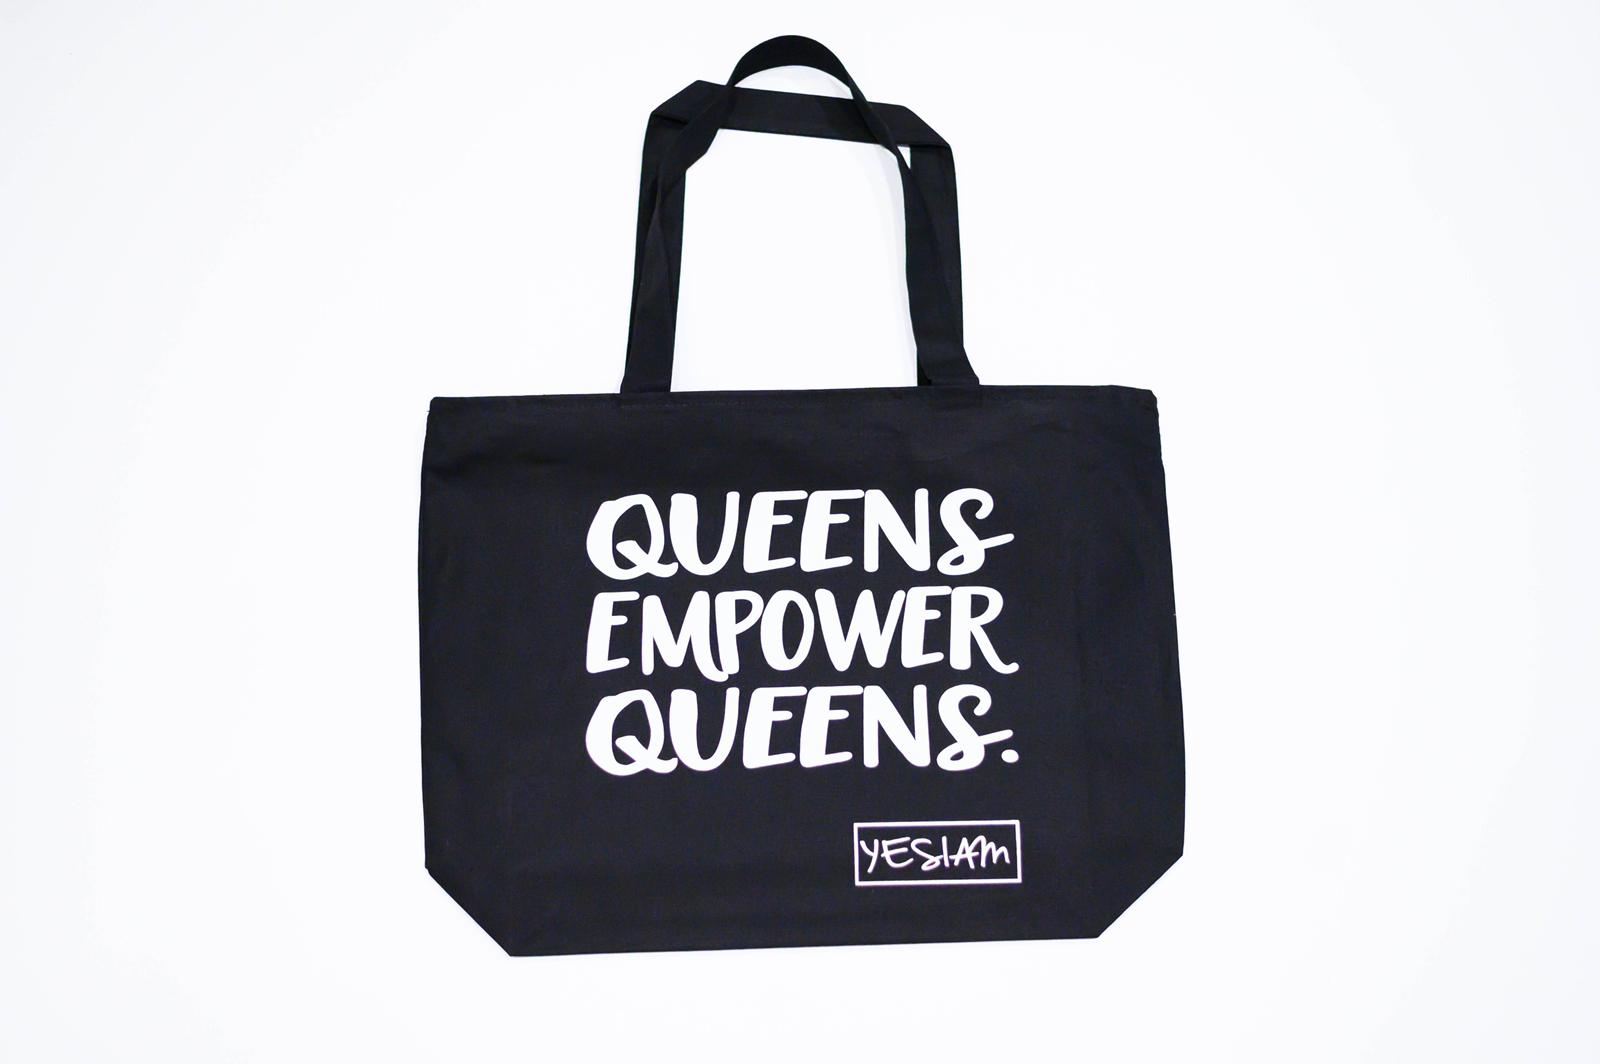 YES I AM ! QUEENS EMPOWER QUEENS OVERSIZED TOTE